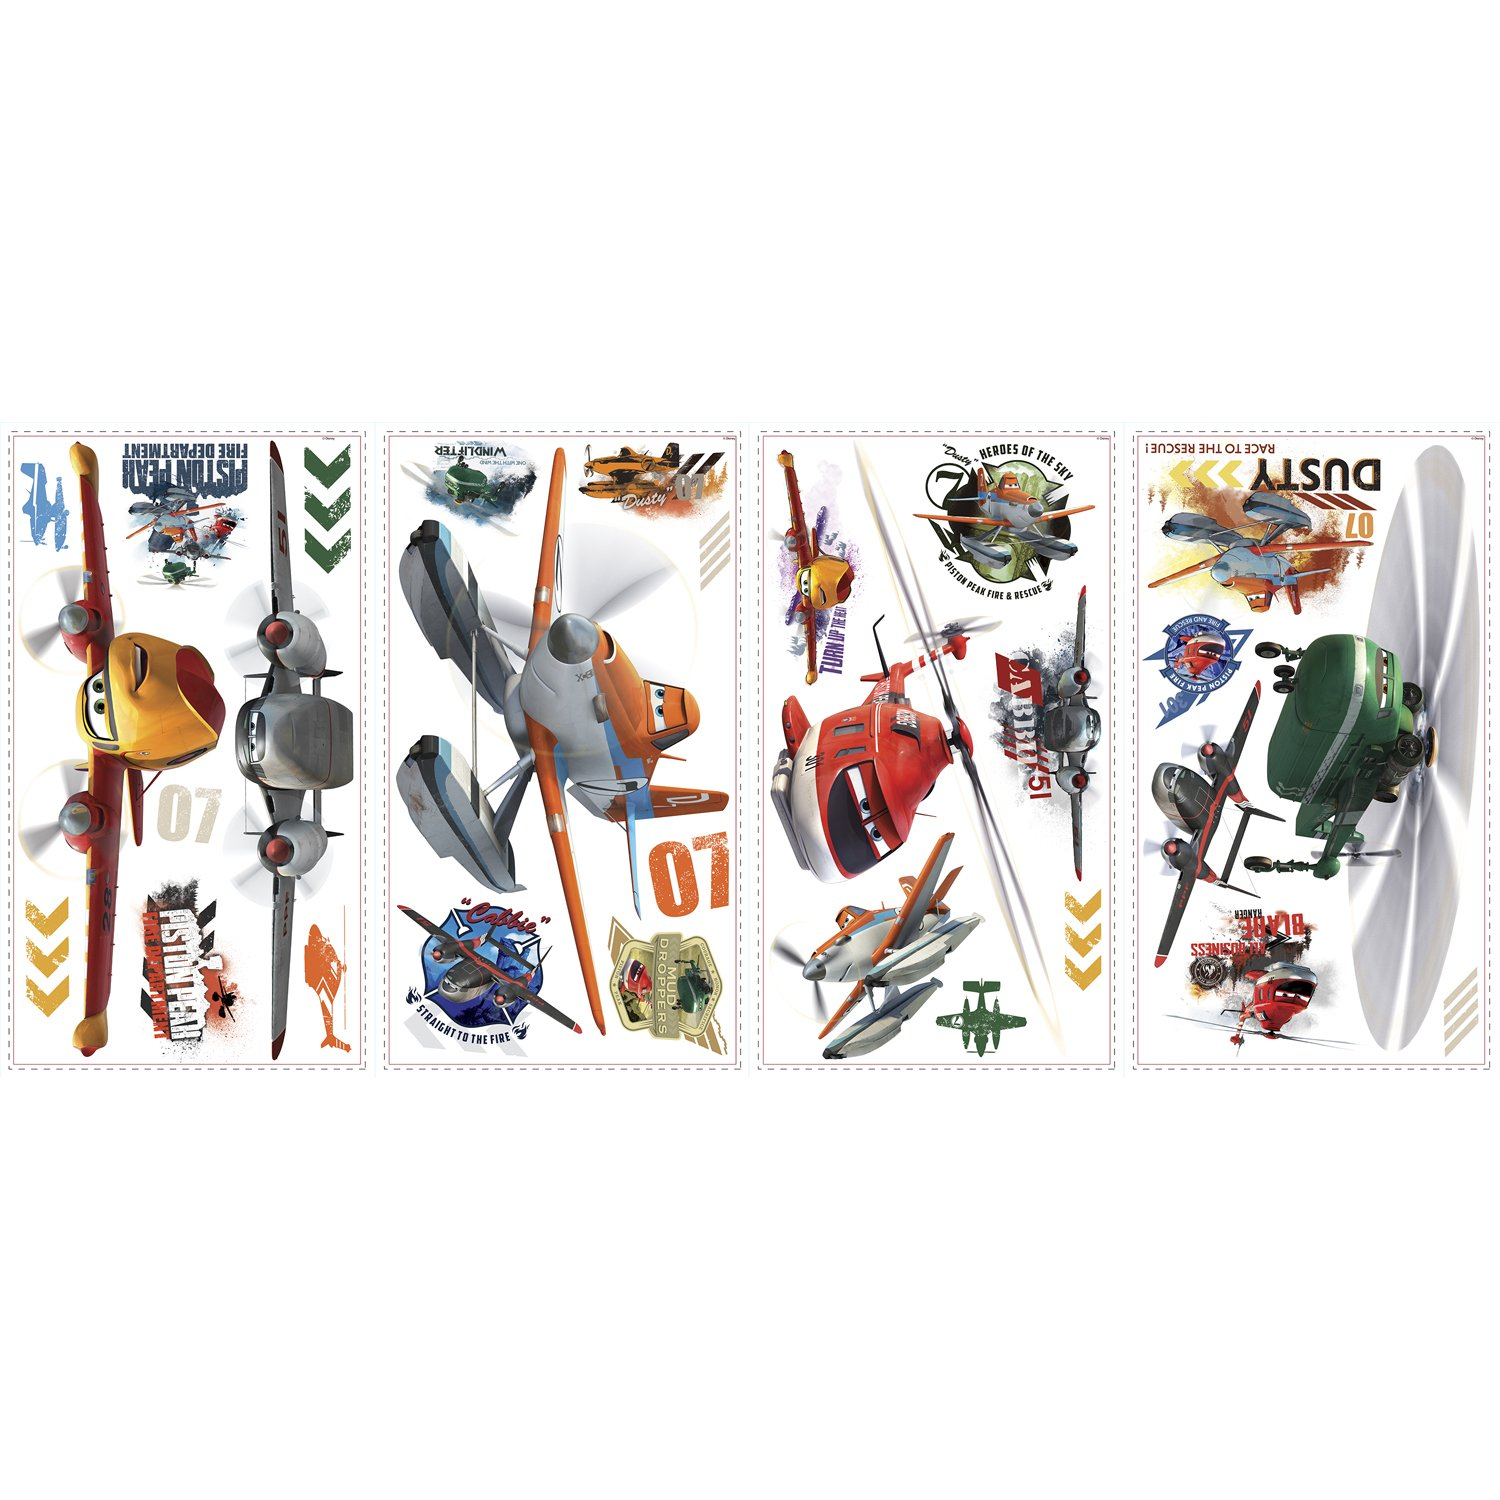 RoomMates Planes Fire /& Rescue Peel /& Stick Wall Decals